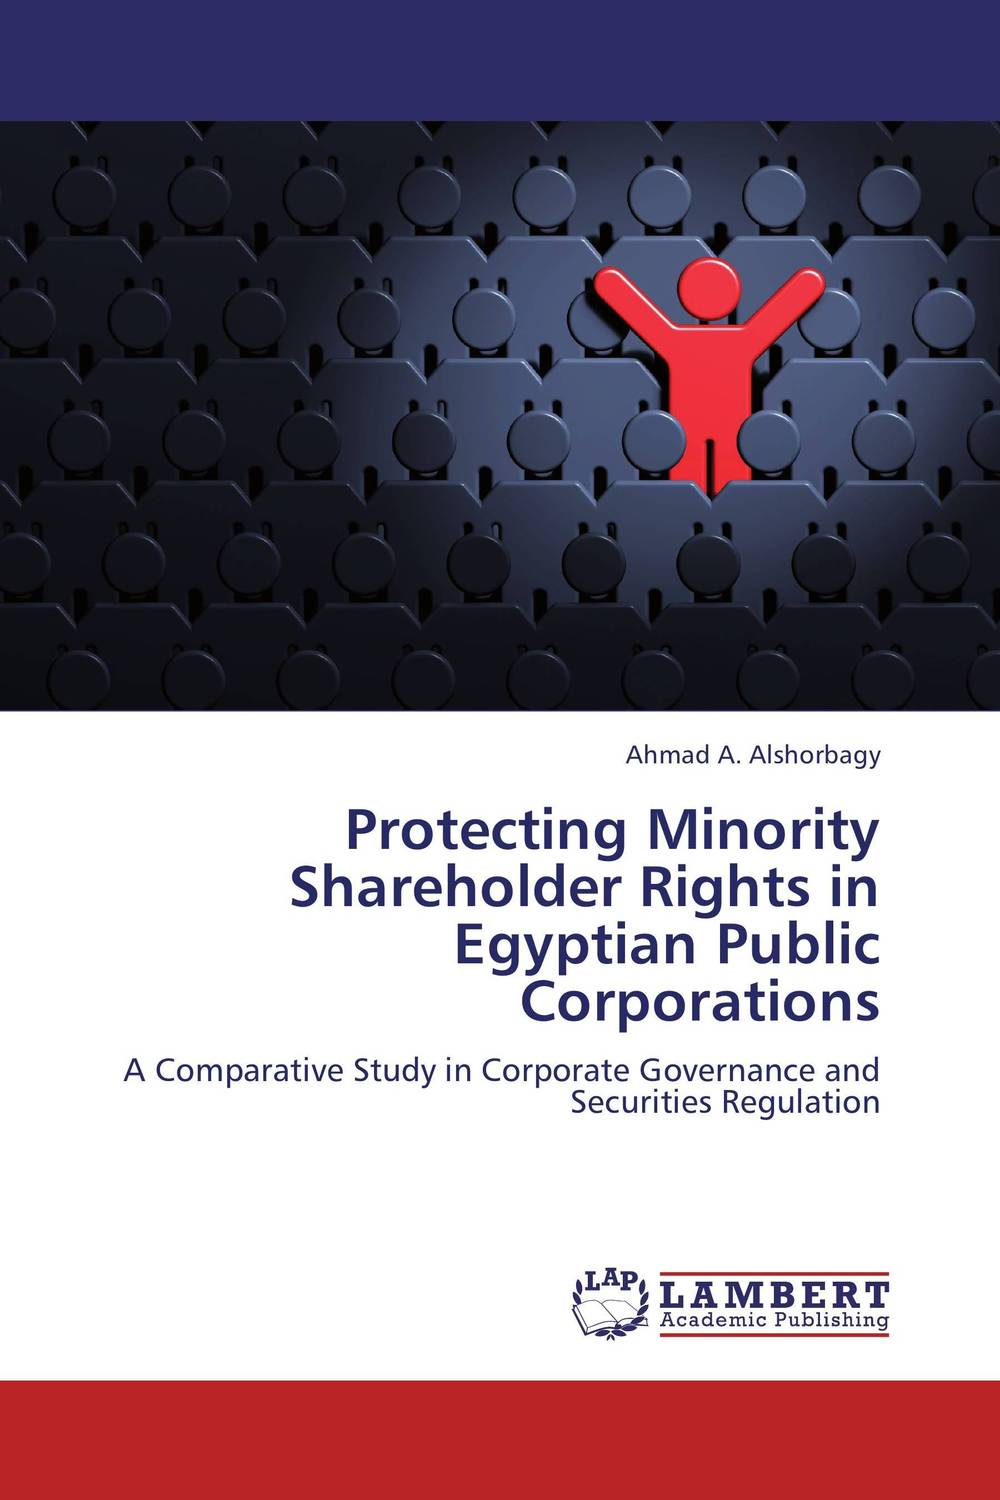 Protecting Minority Shareholder Rights in Egyptian Public Corporations